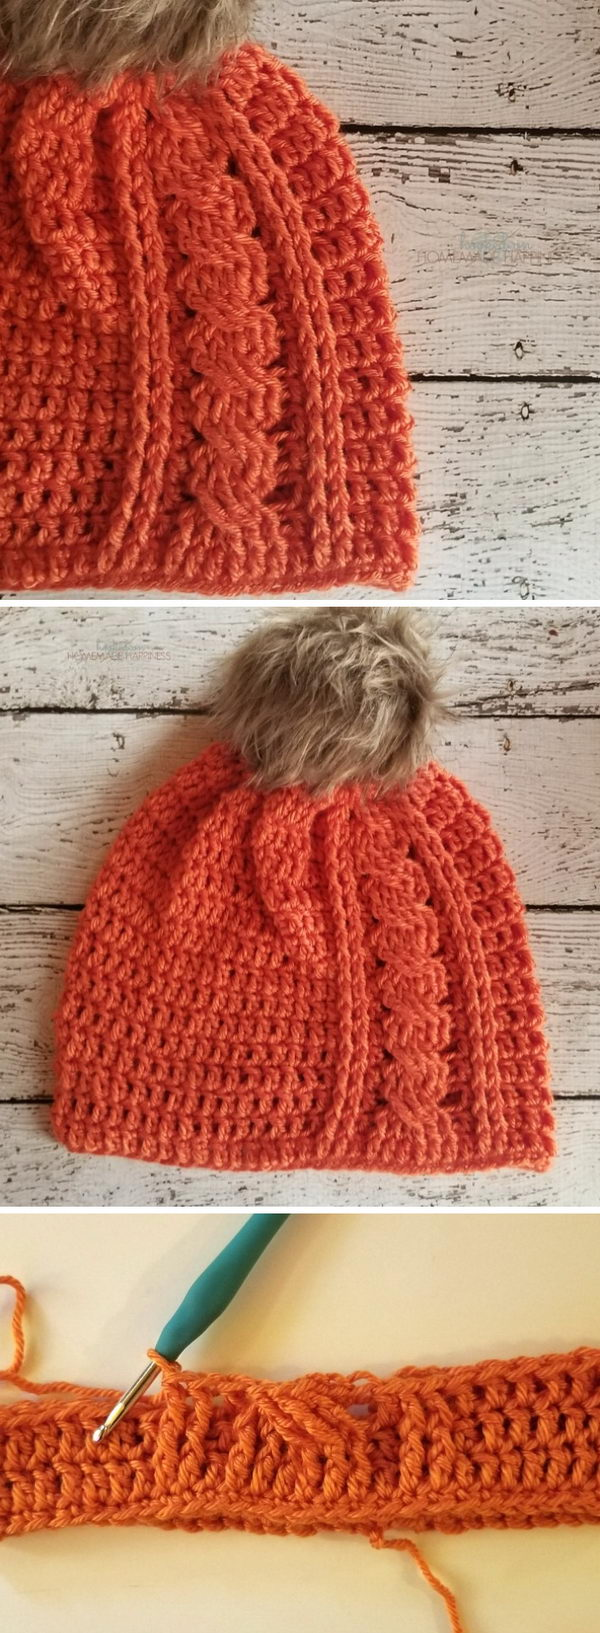 15 Crochet Hat Ideas 2019